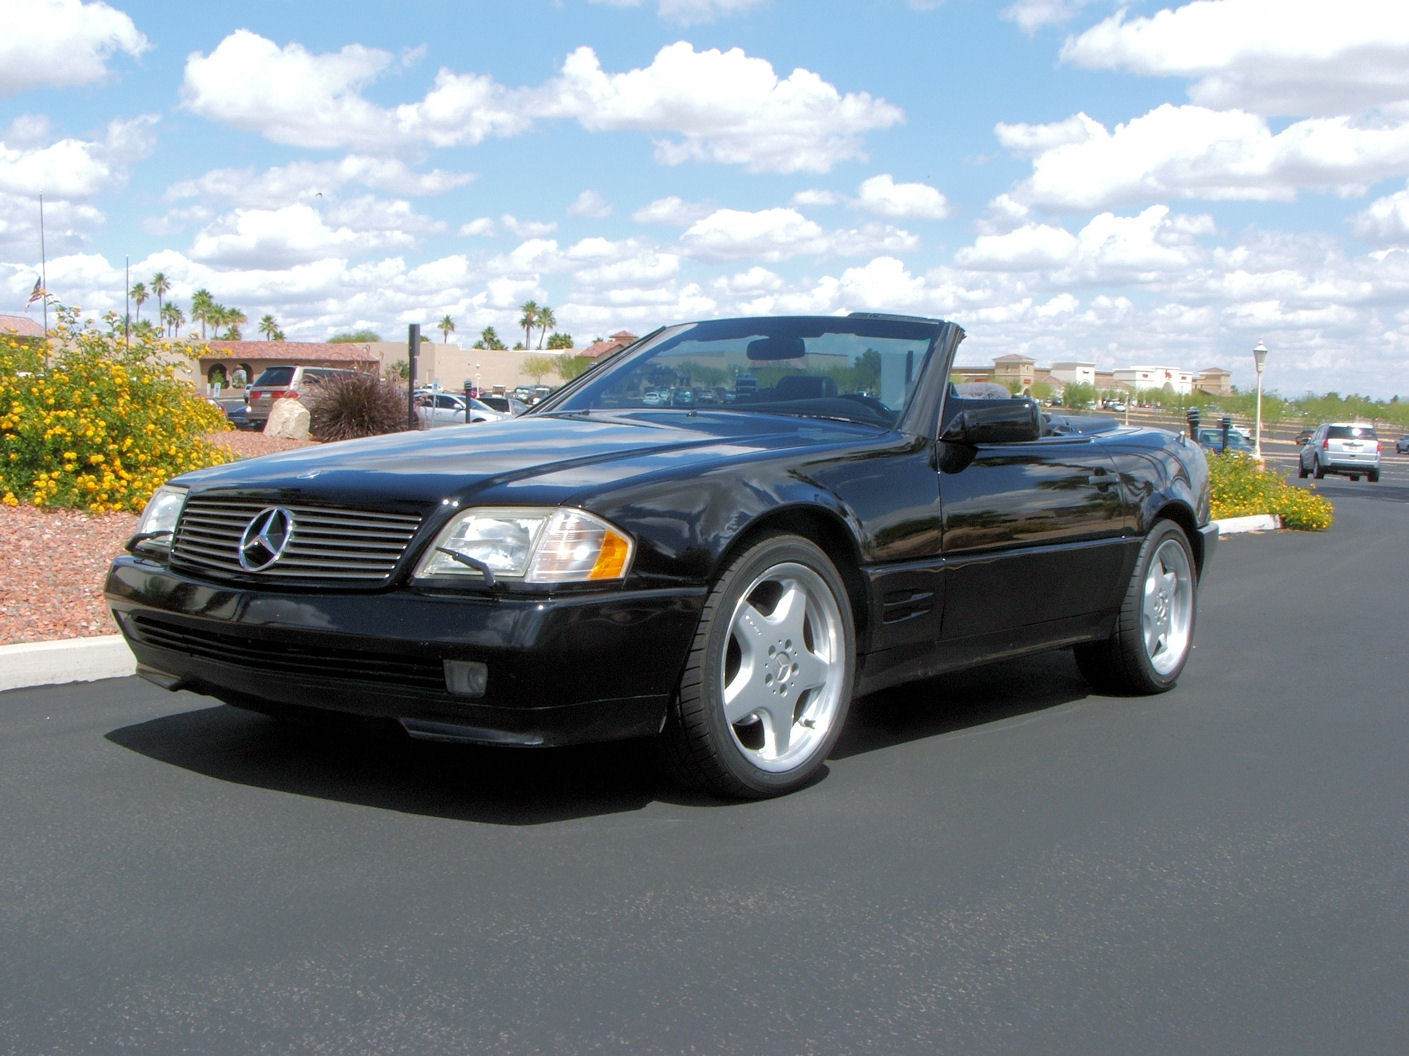 1994 mercedes benz 500sl convertible for sale for Mercedes benz cabriolet for sale